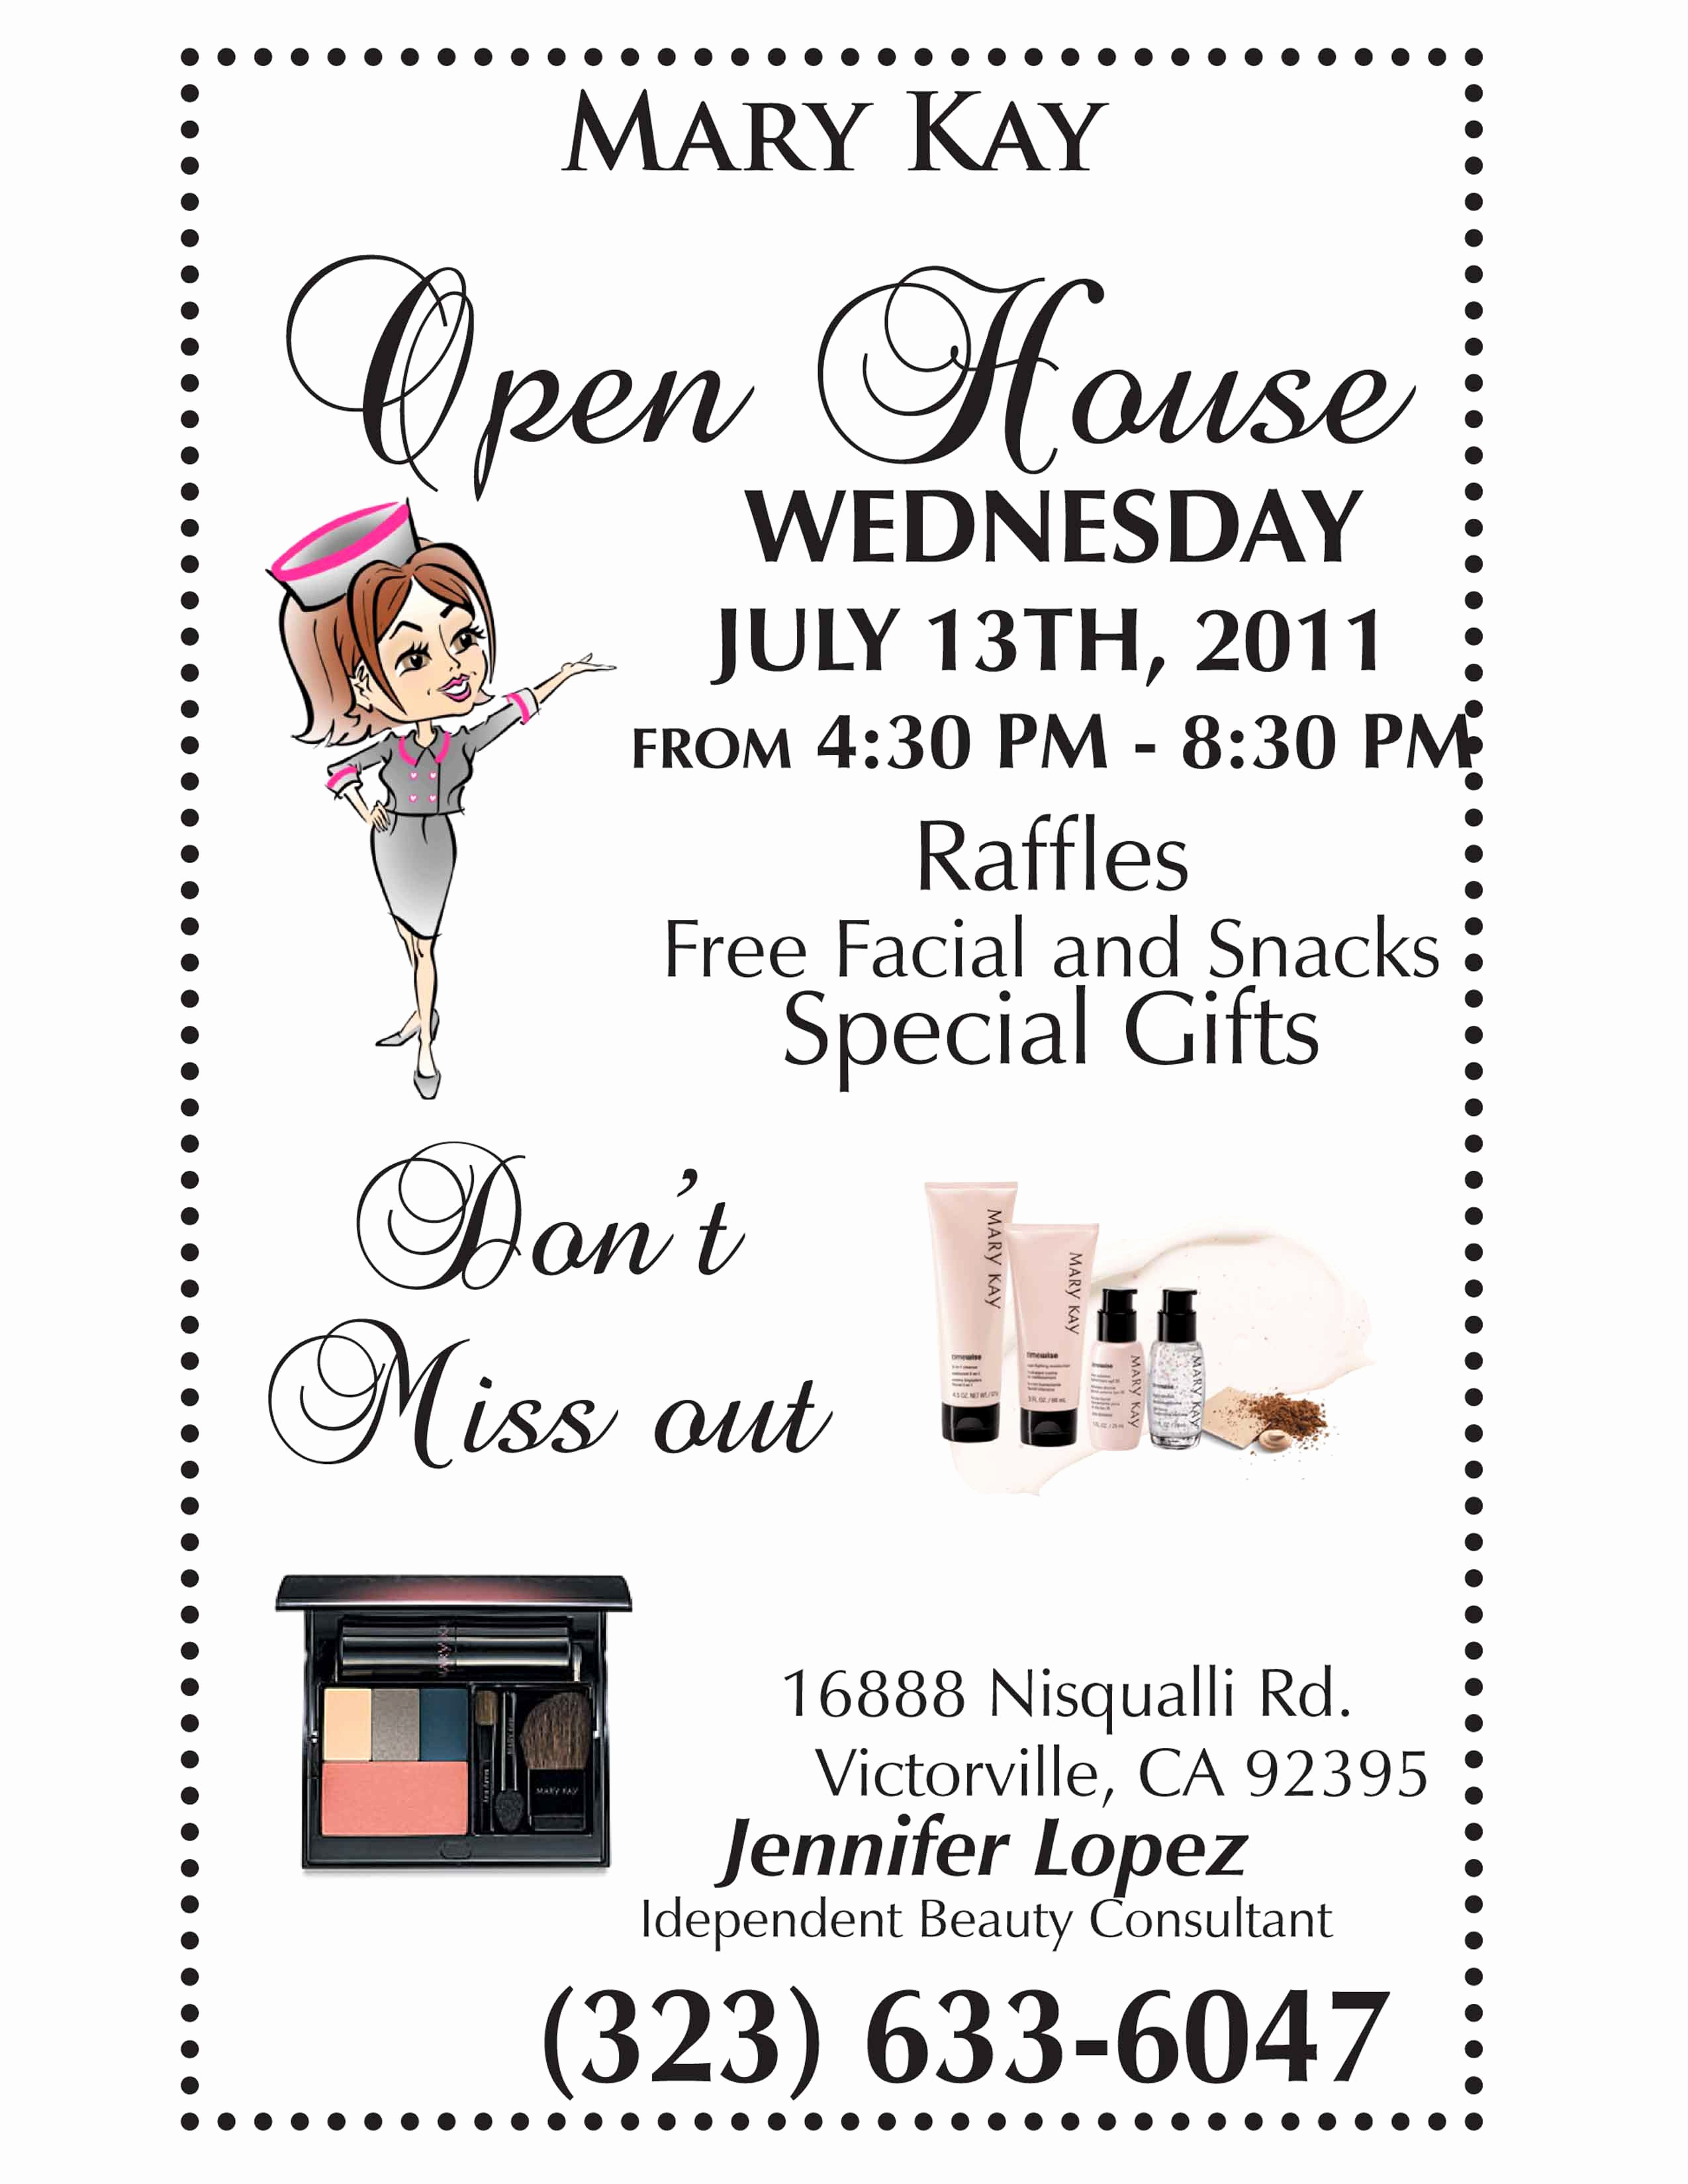 Mary Kay Invitation Template Beautiful Mary Kay Open House Flyer Template Google Search